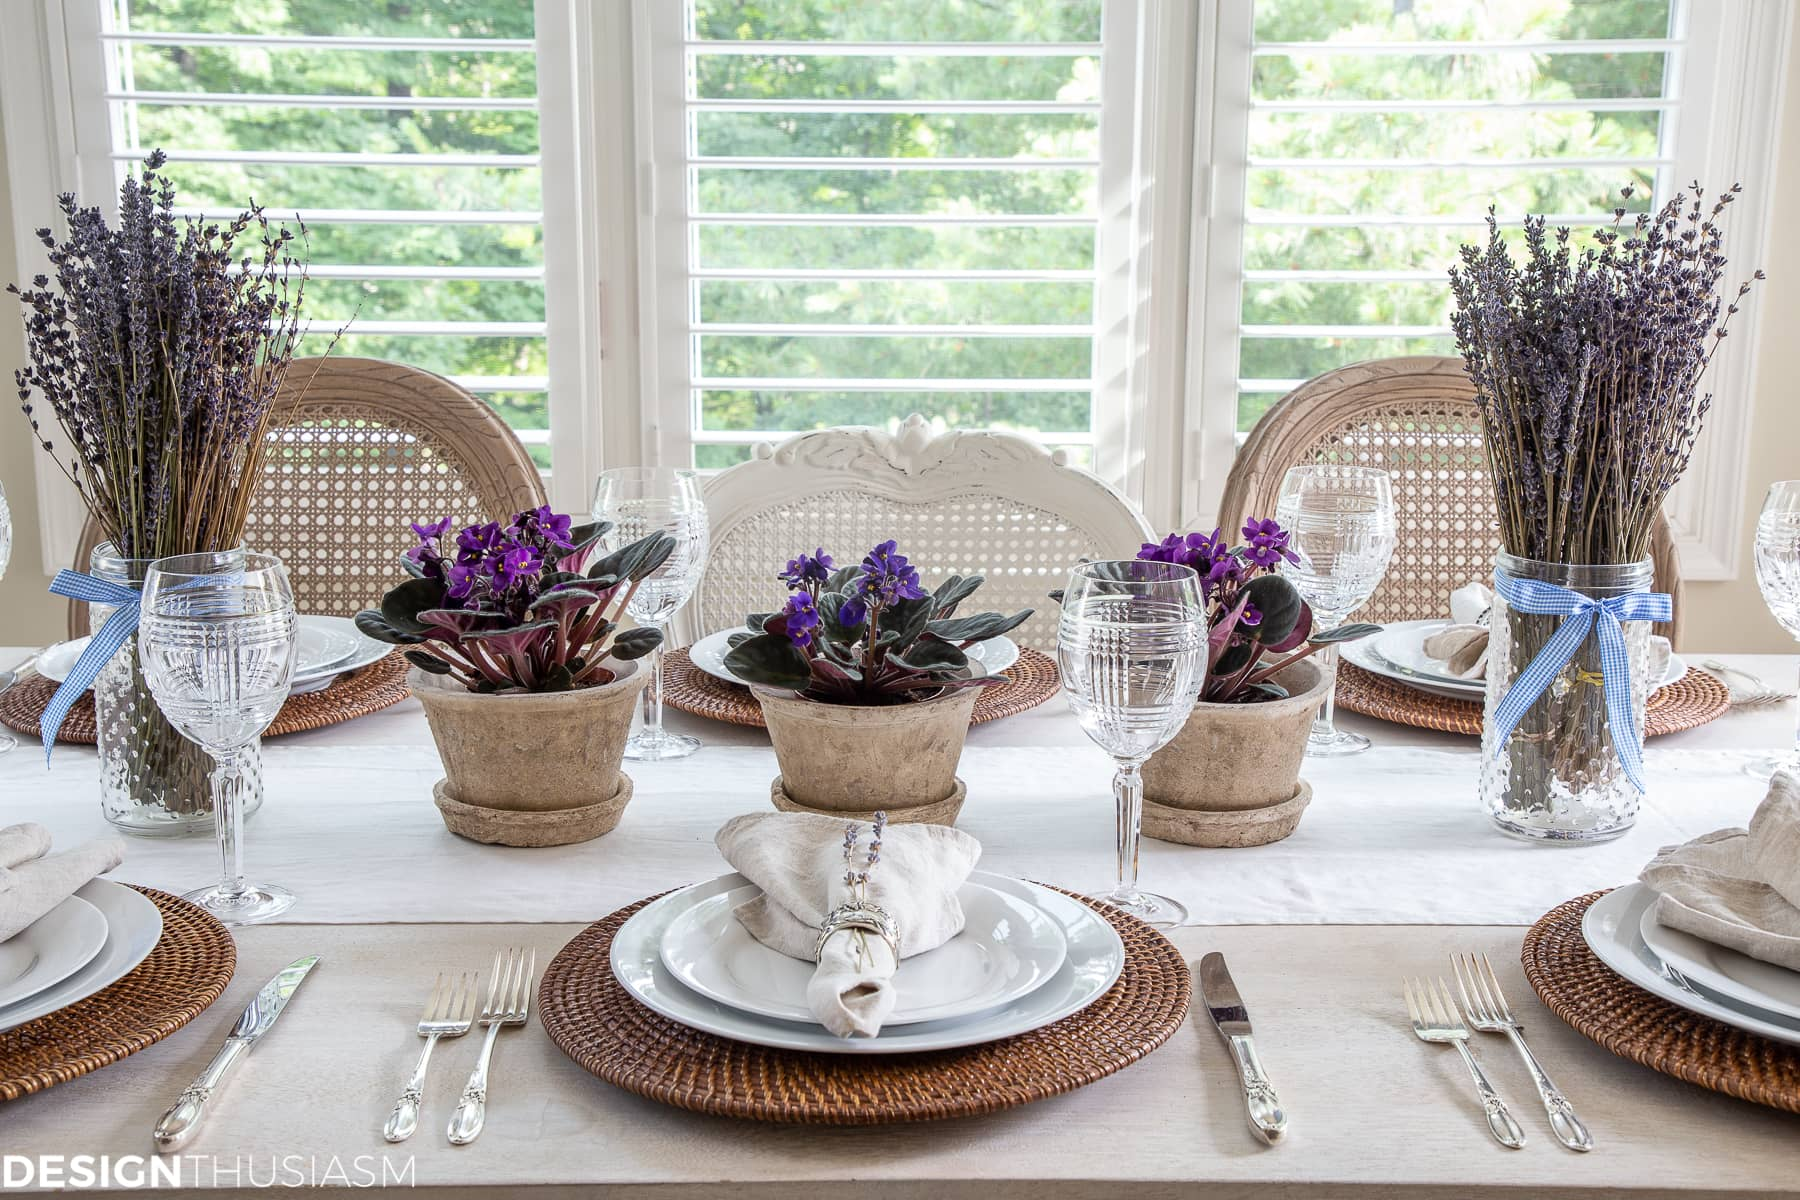 summer table setting with clay pots